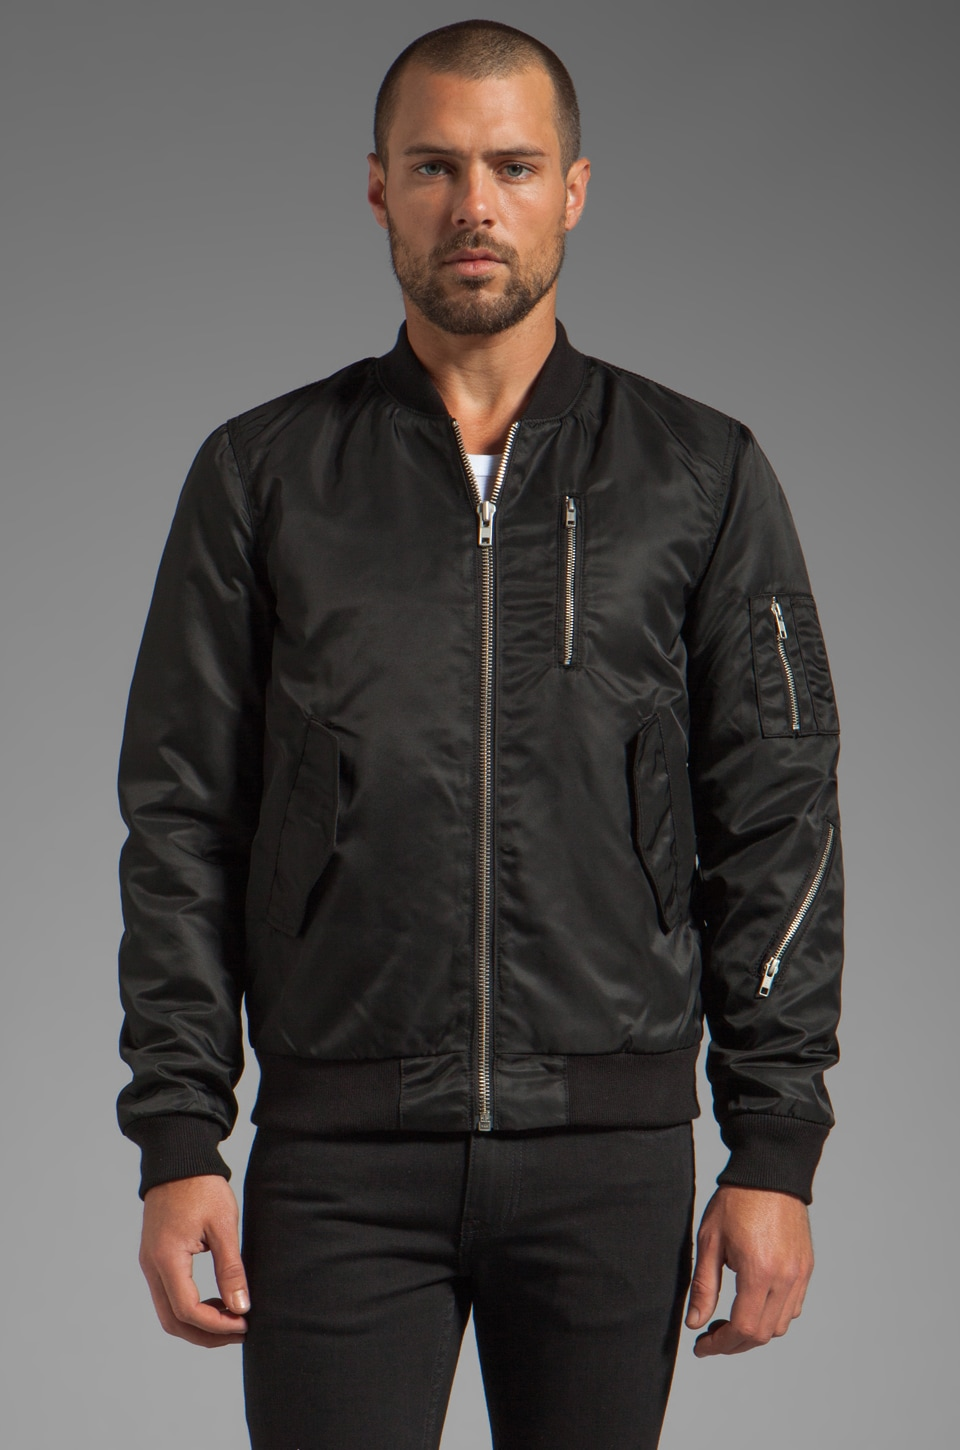 BLK DNM Jacket 45 in Black